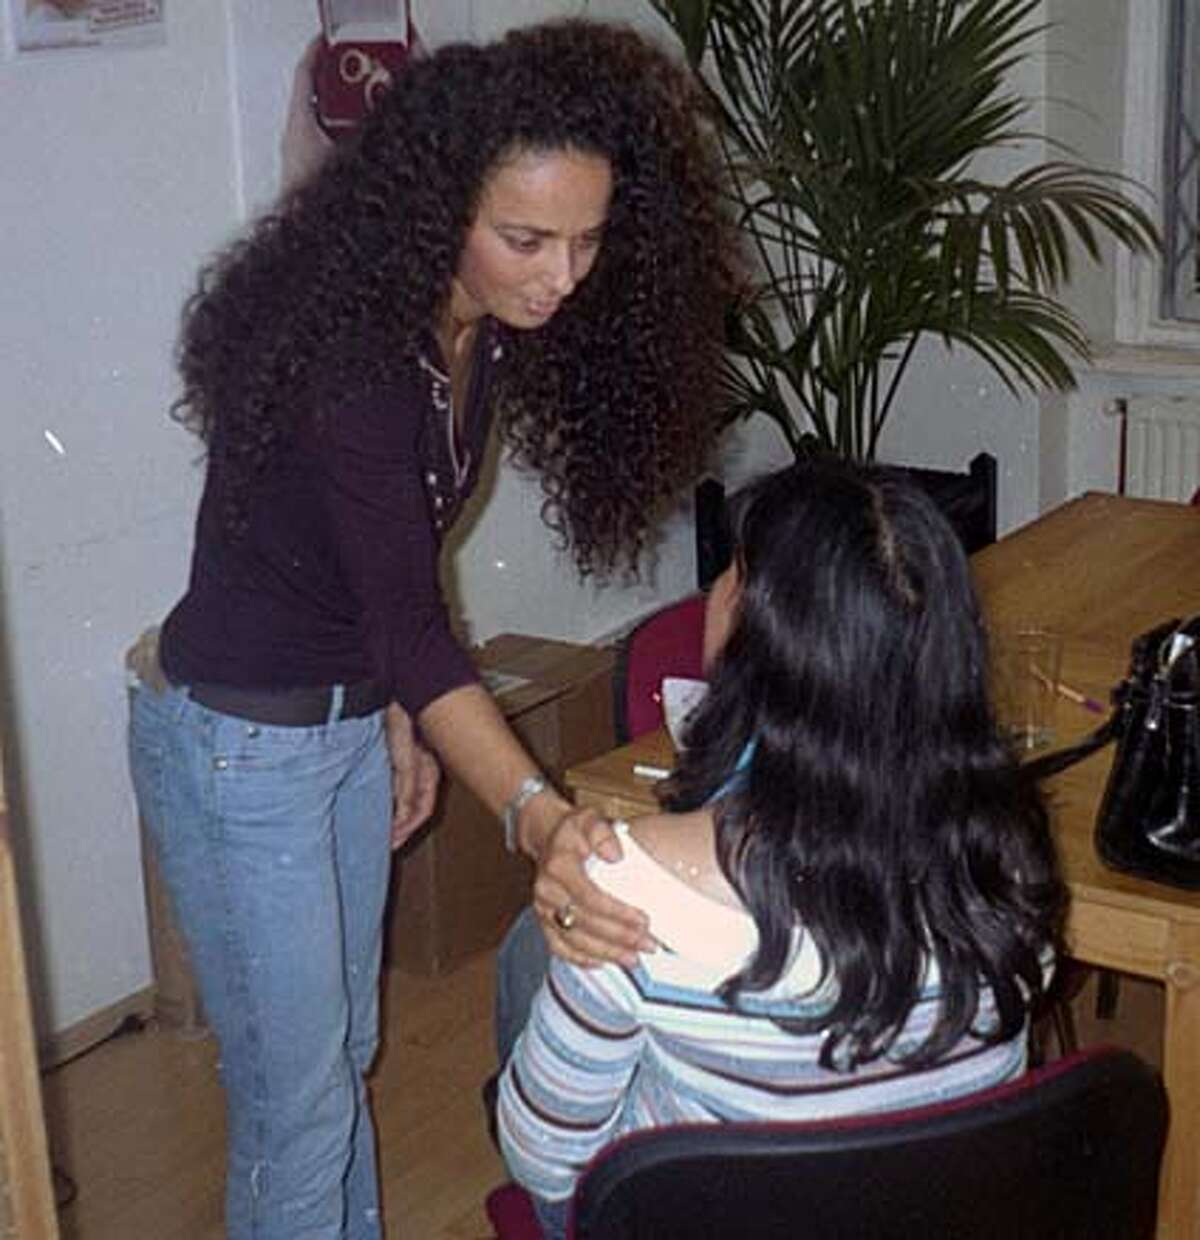 austria_abuse6.jpg Meltem Weiland a Turkish-born volunteer counsels Angela, an Indian woman who escaped a forced marriage.